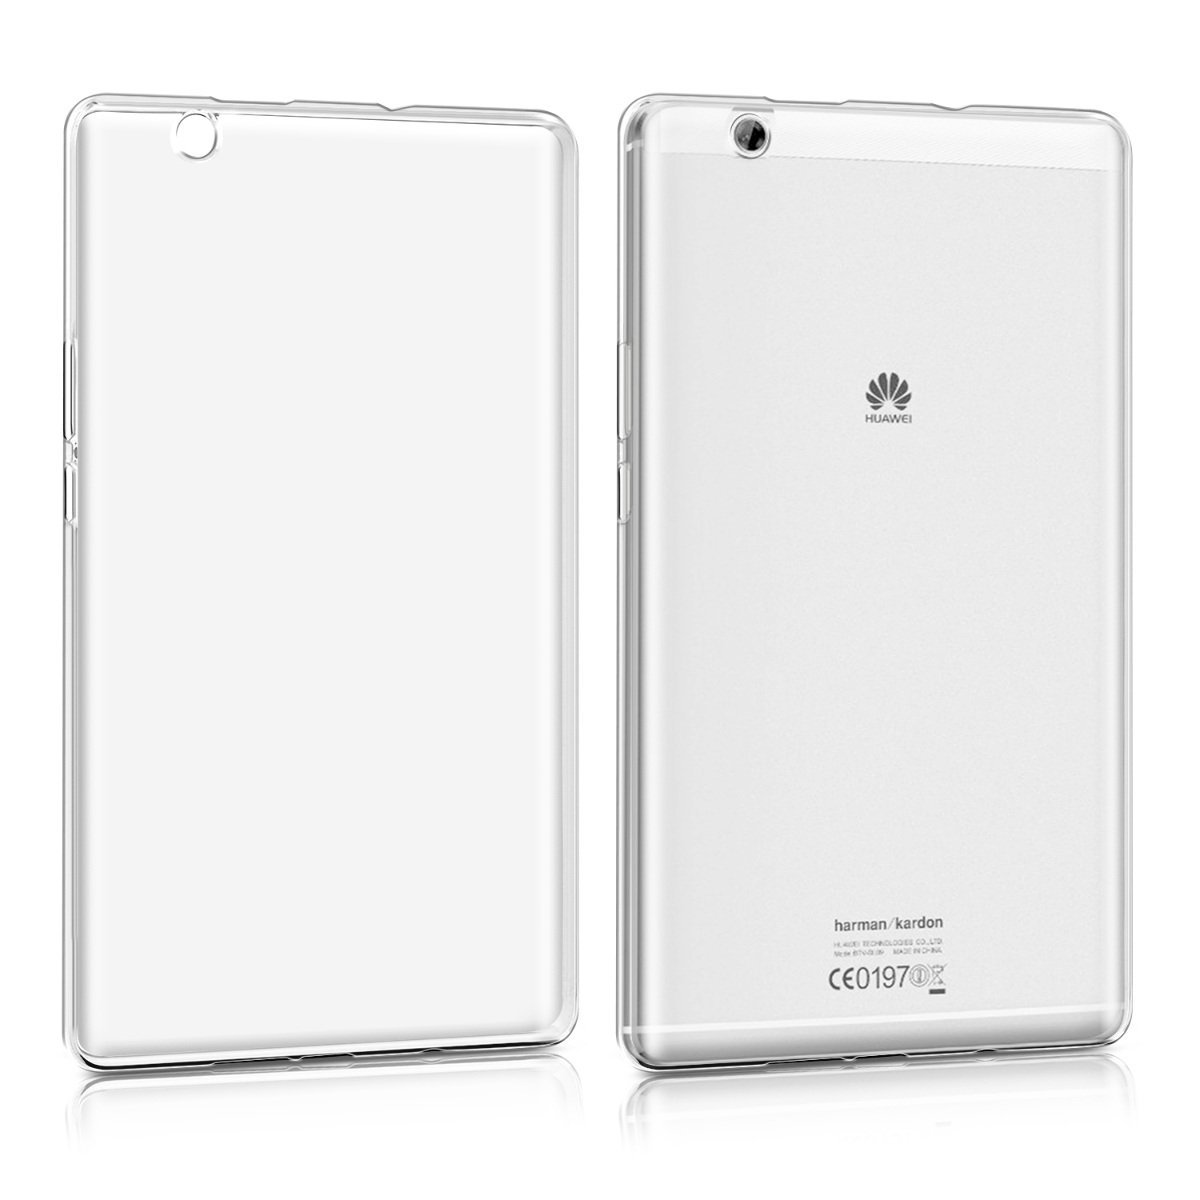 Crystal Case Soft Cover for Huawei MediaPad M3 8.4 BTV-W09 BTV-DL09 TPU Silicone Case Protective Cover for Huawei M3 8.4 inch grasale for meizu m3s mini m3 mini case soft slim silicone matte protective back cover cases for meizu m3 mini full cover